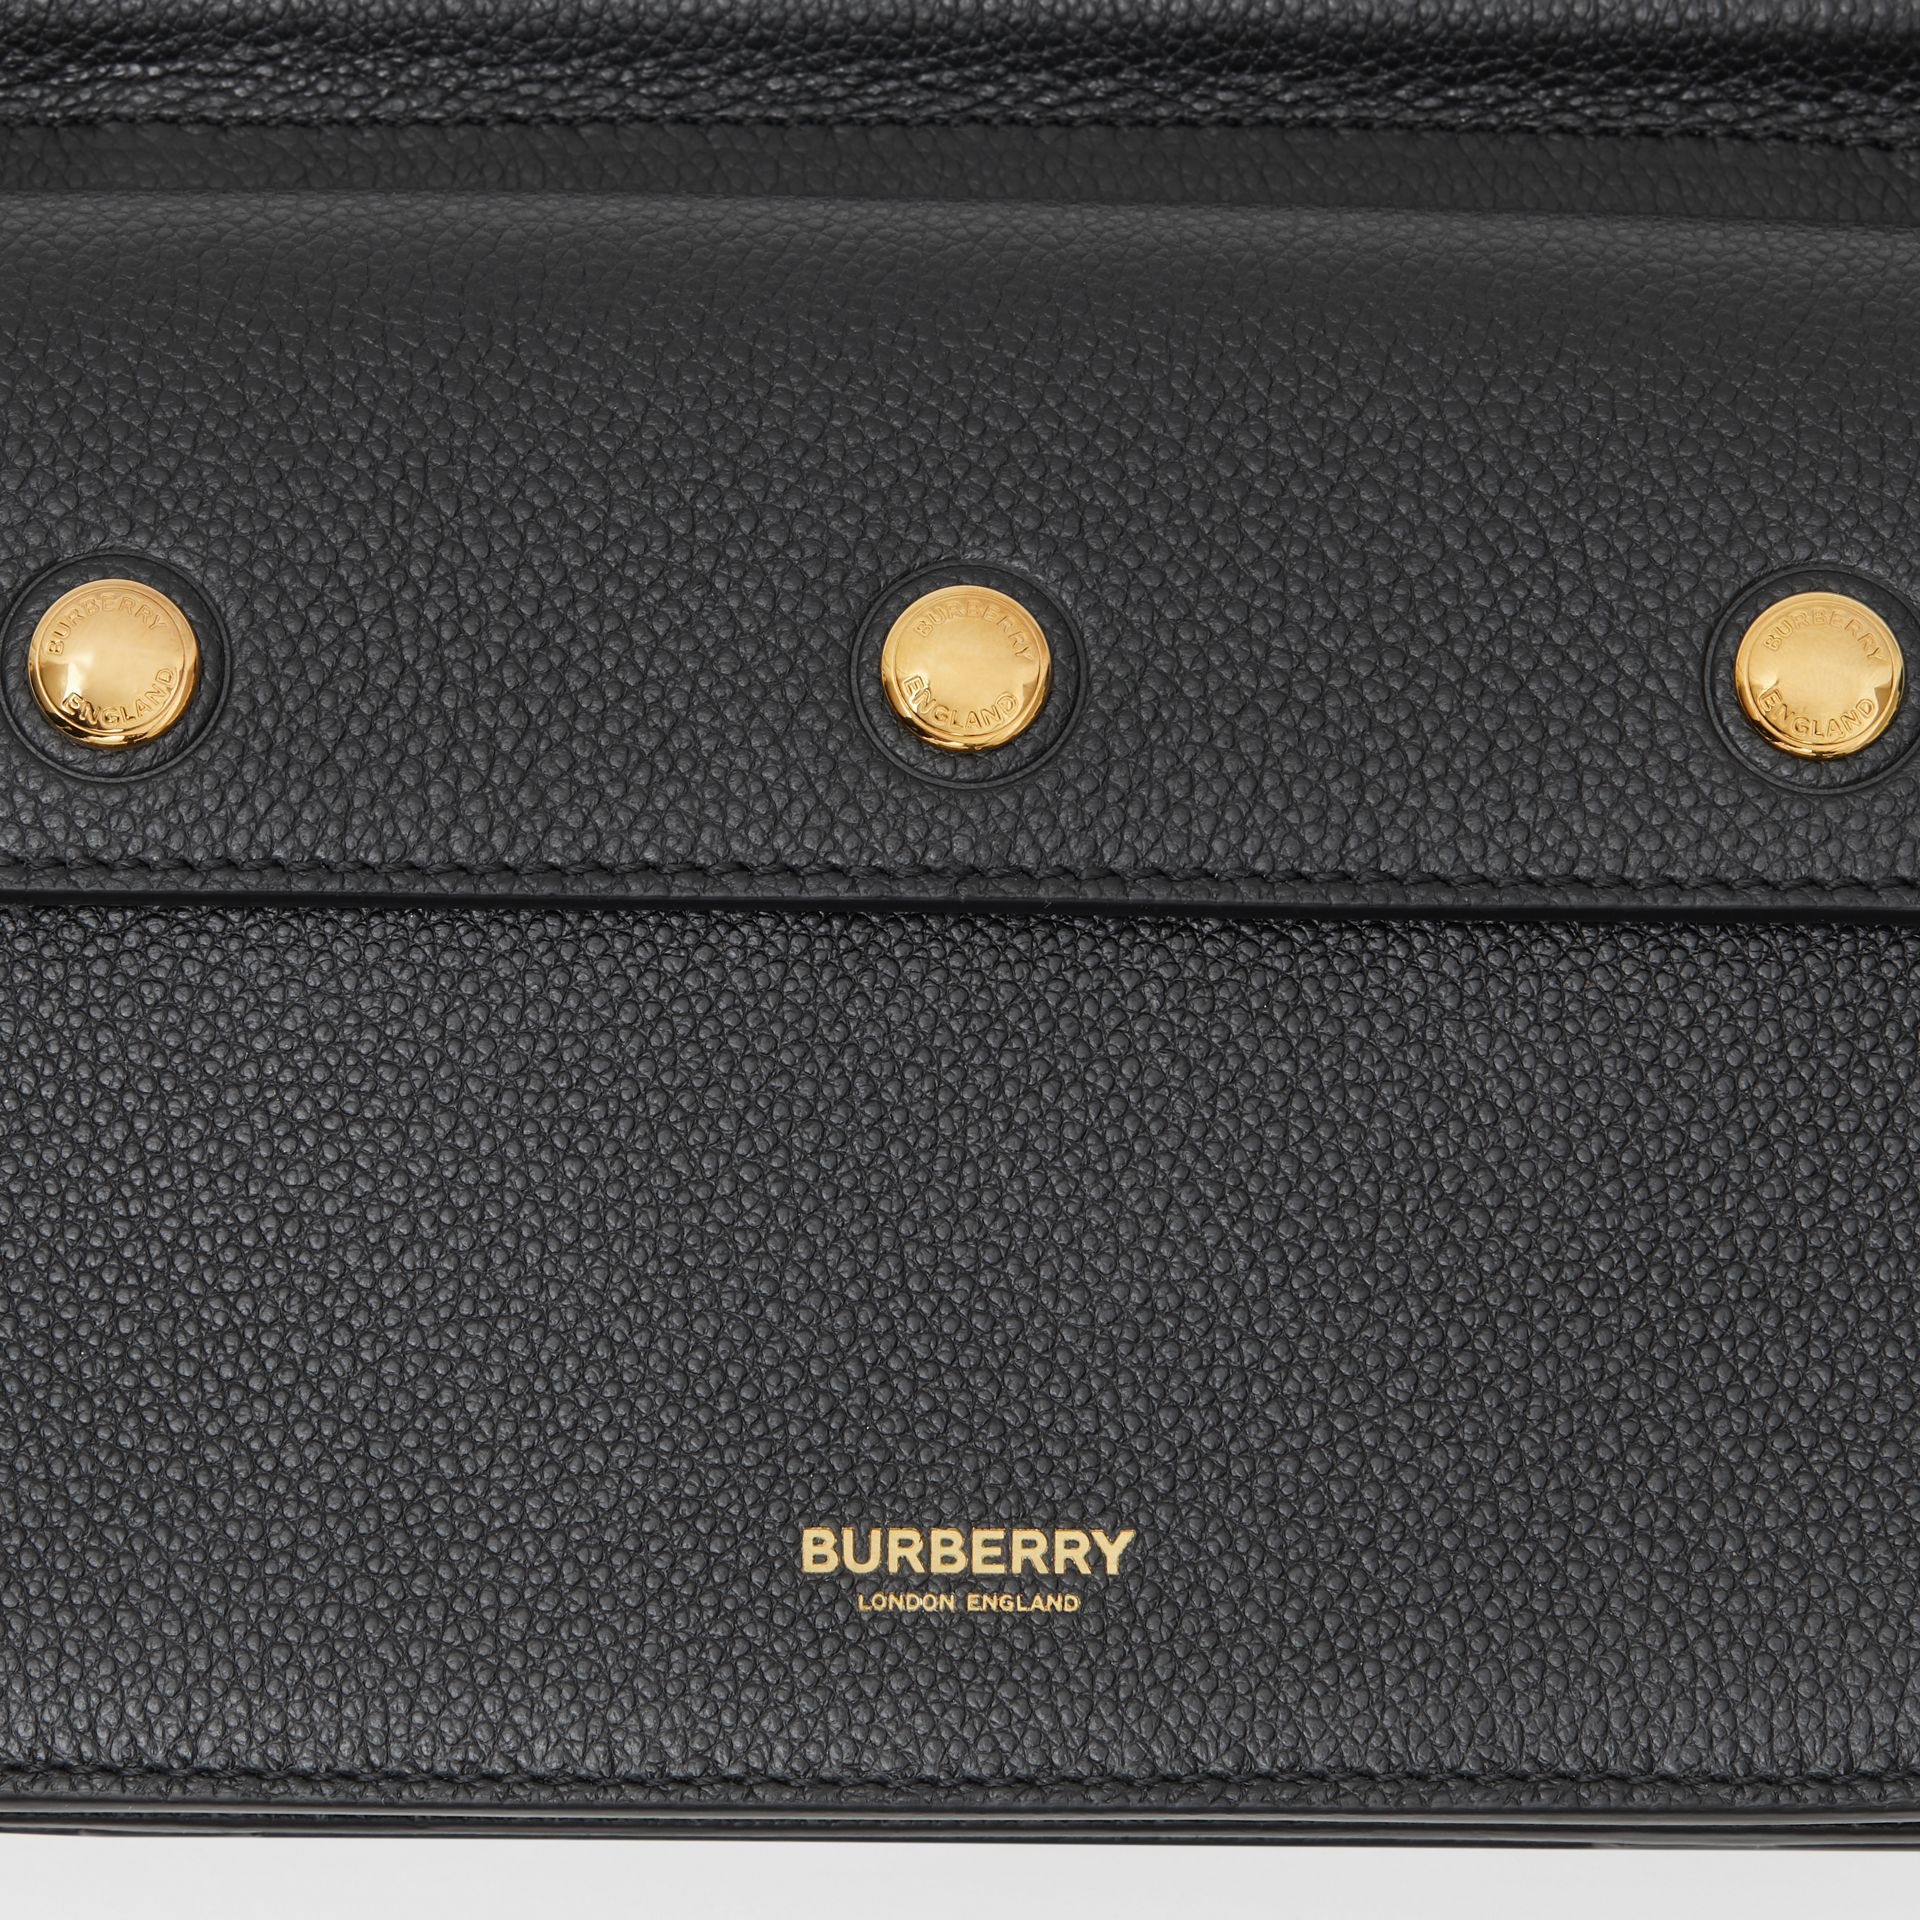 Mini Leather Title Bag with Pocket Detail in Black - Women | Burberry Singapore - gallery image 8